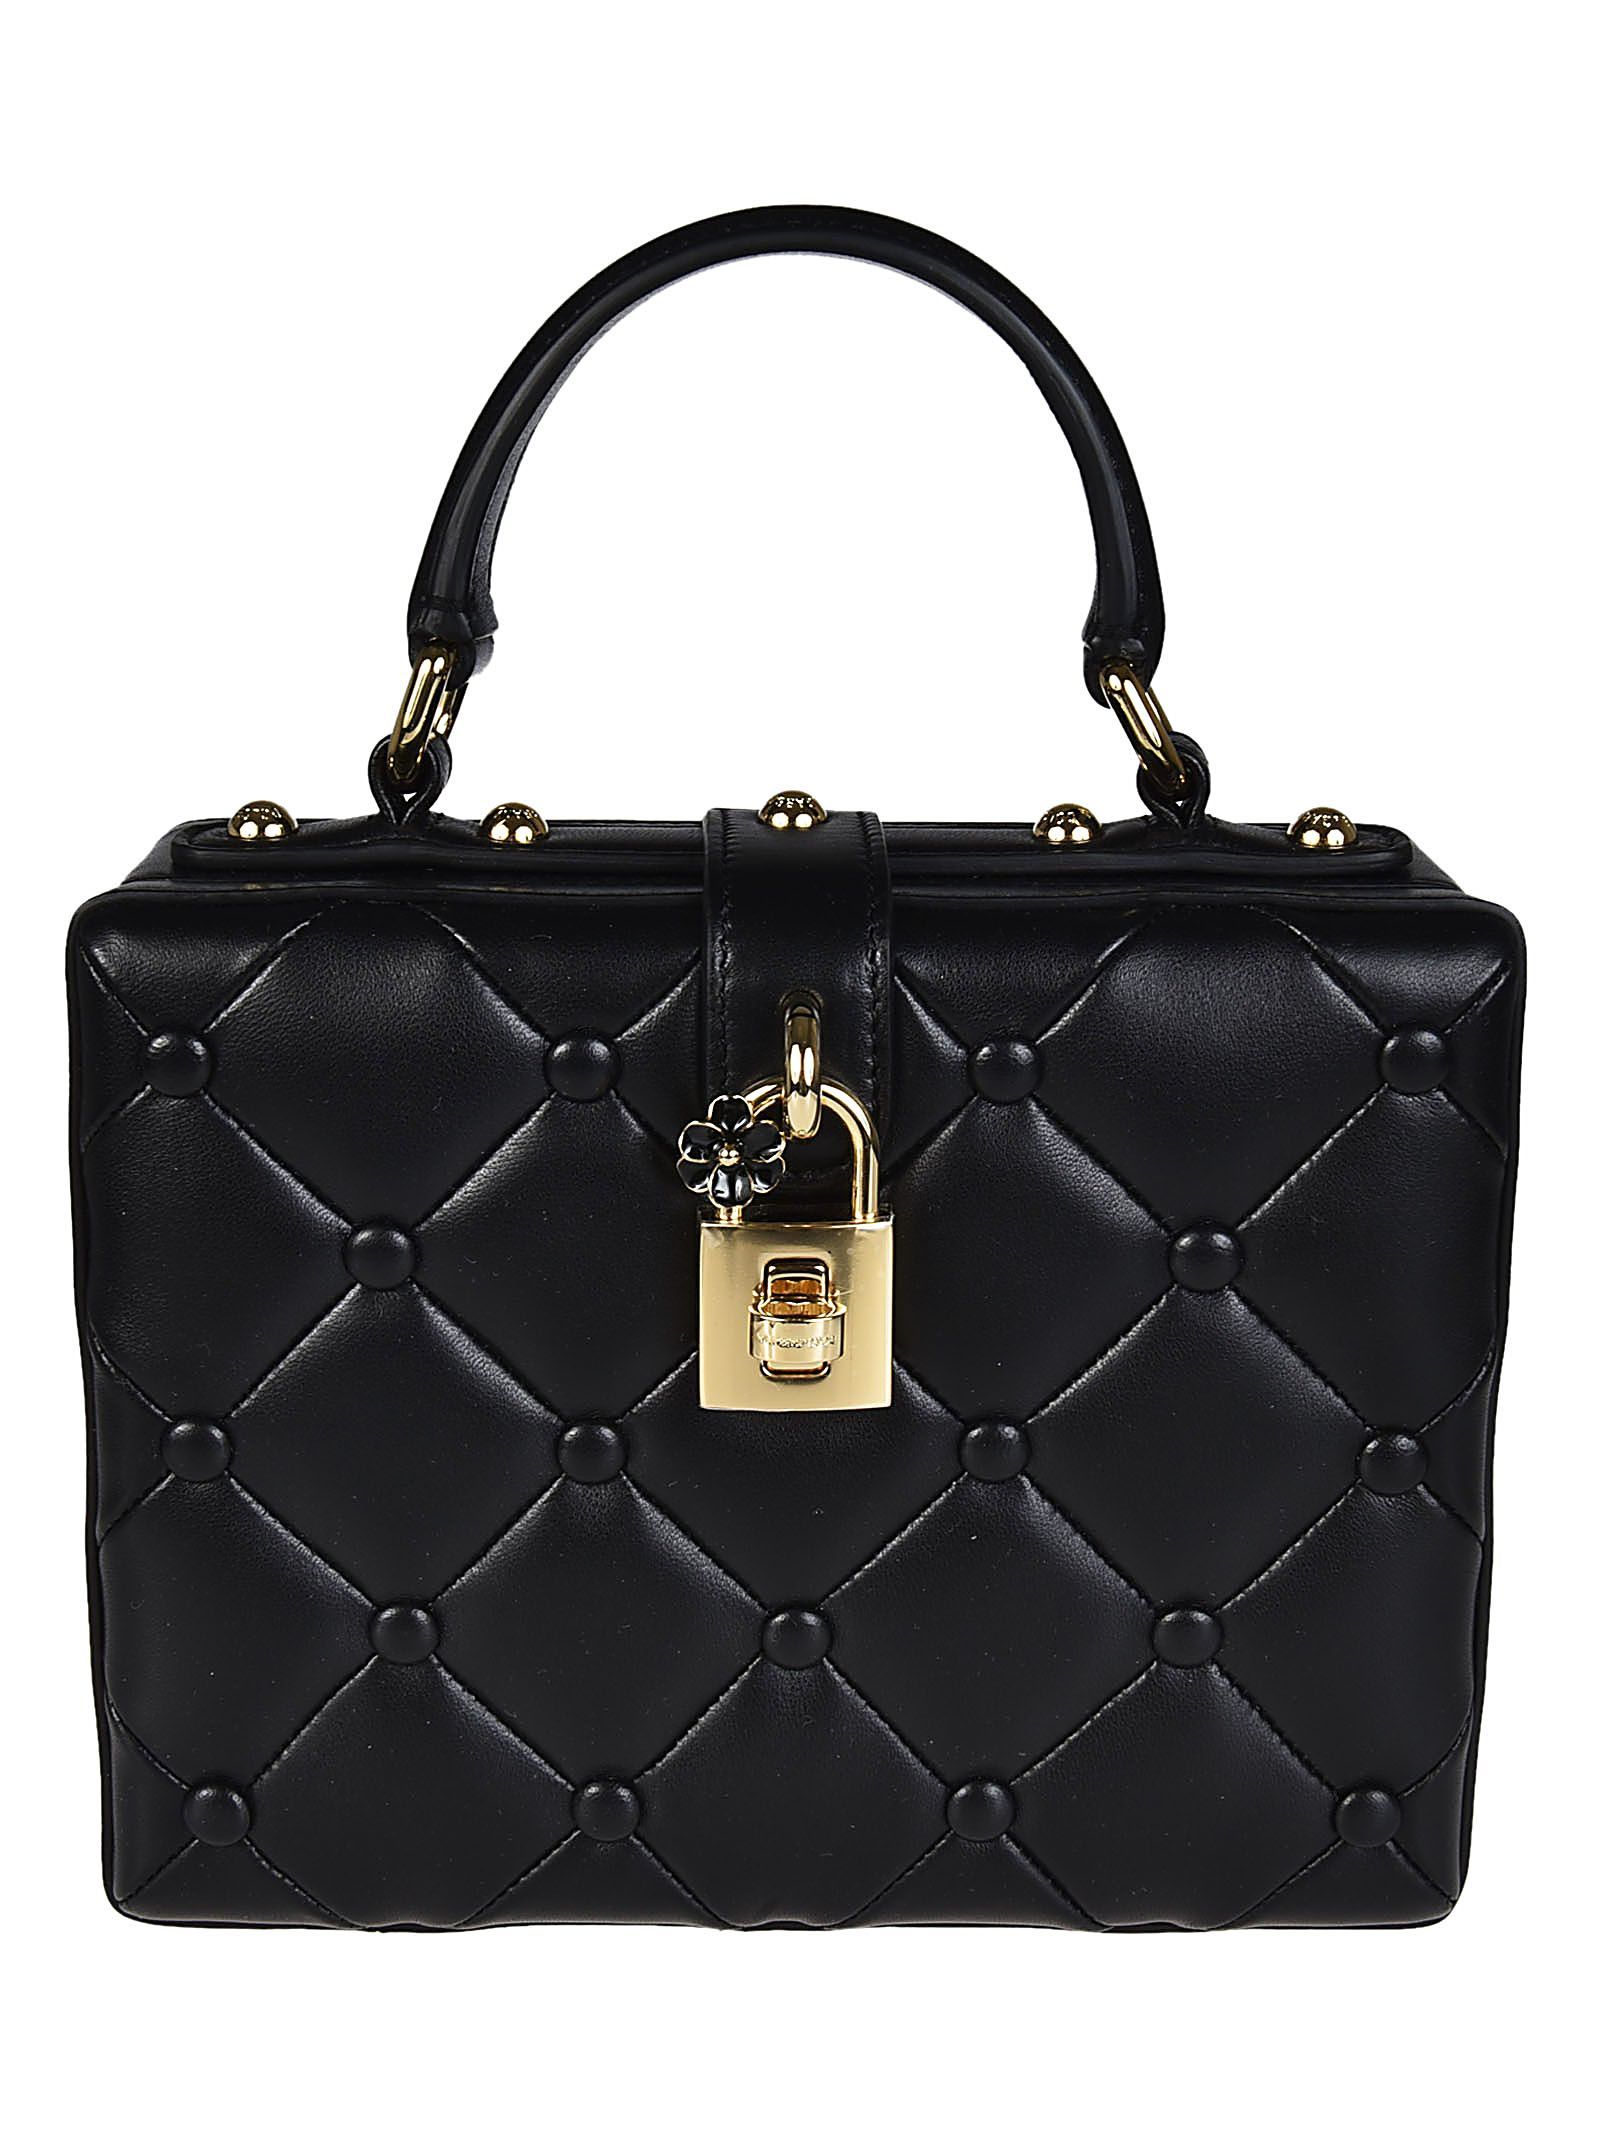 Dolce & Gabbana Dolce Box Shoulder Bag